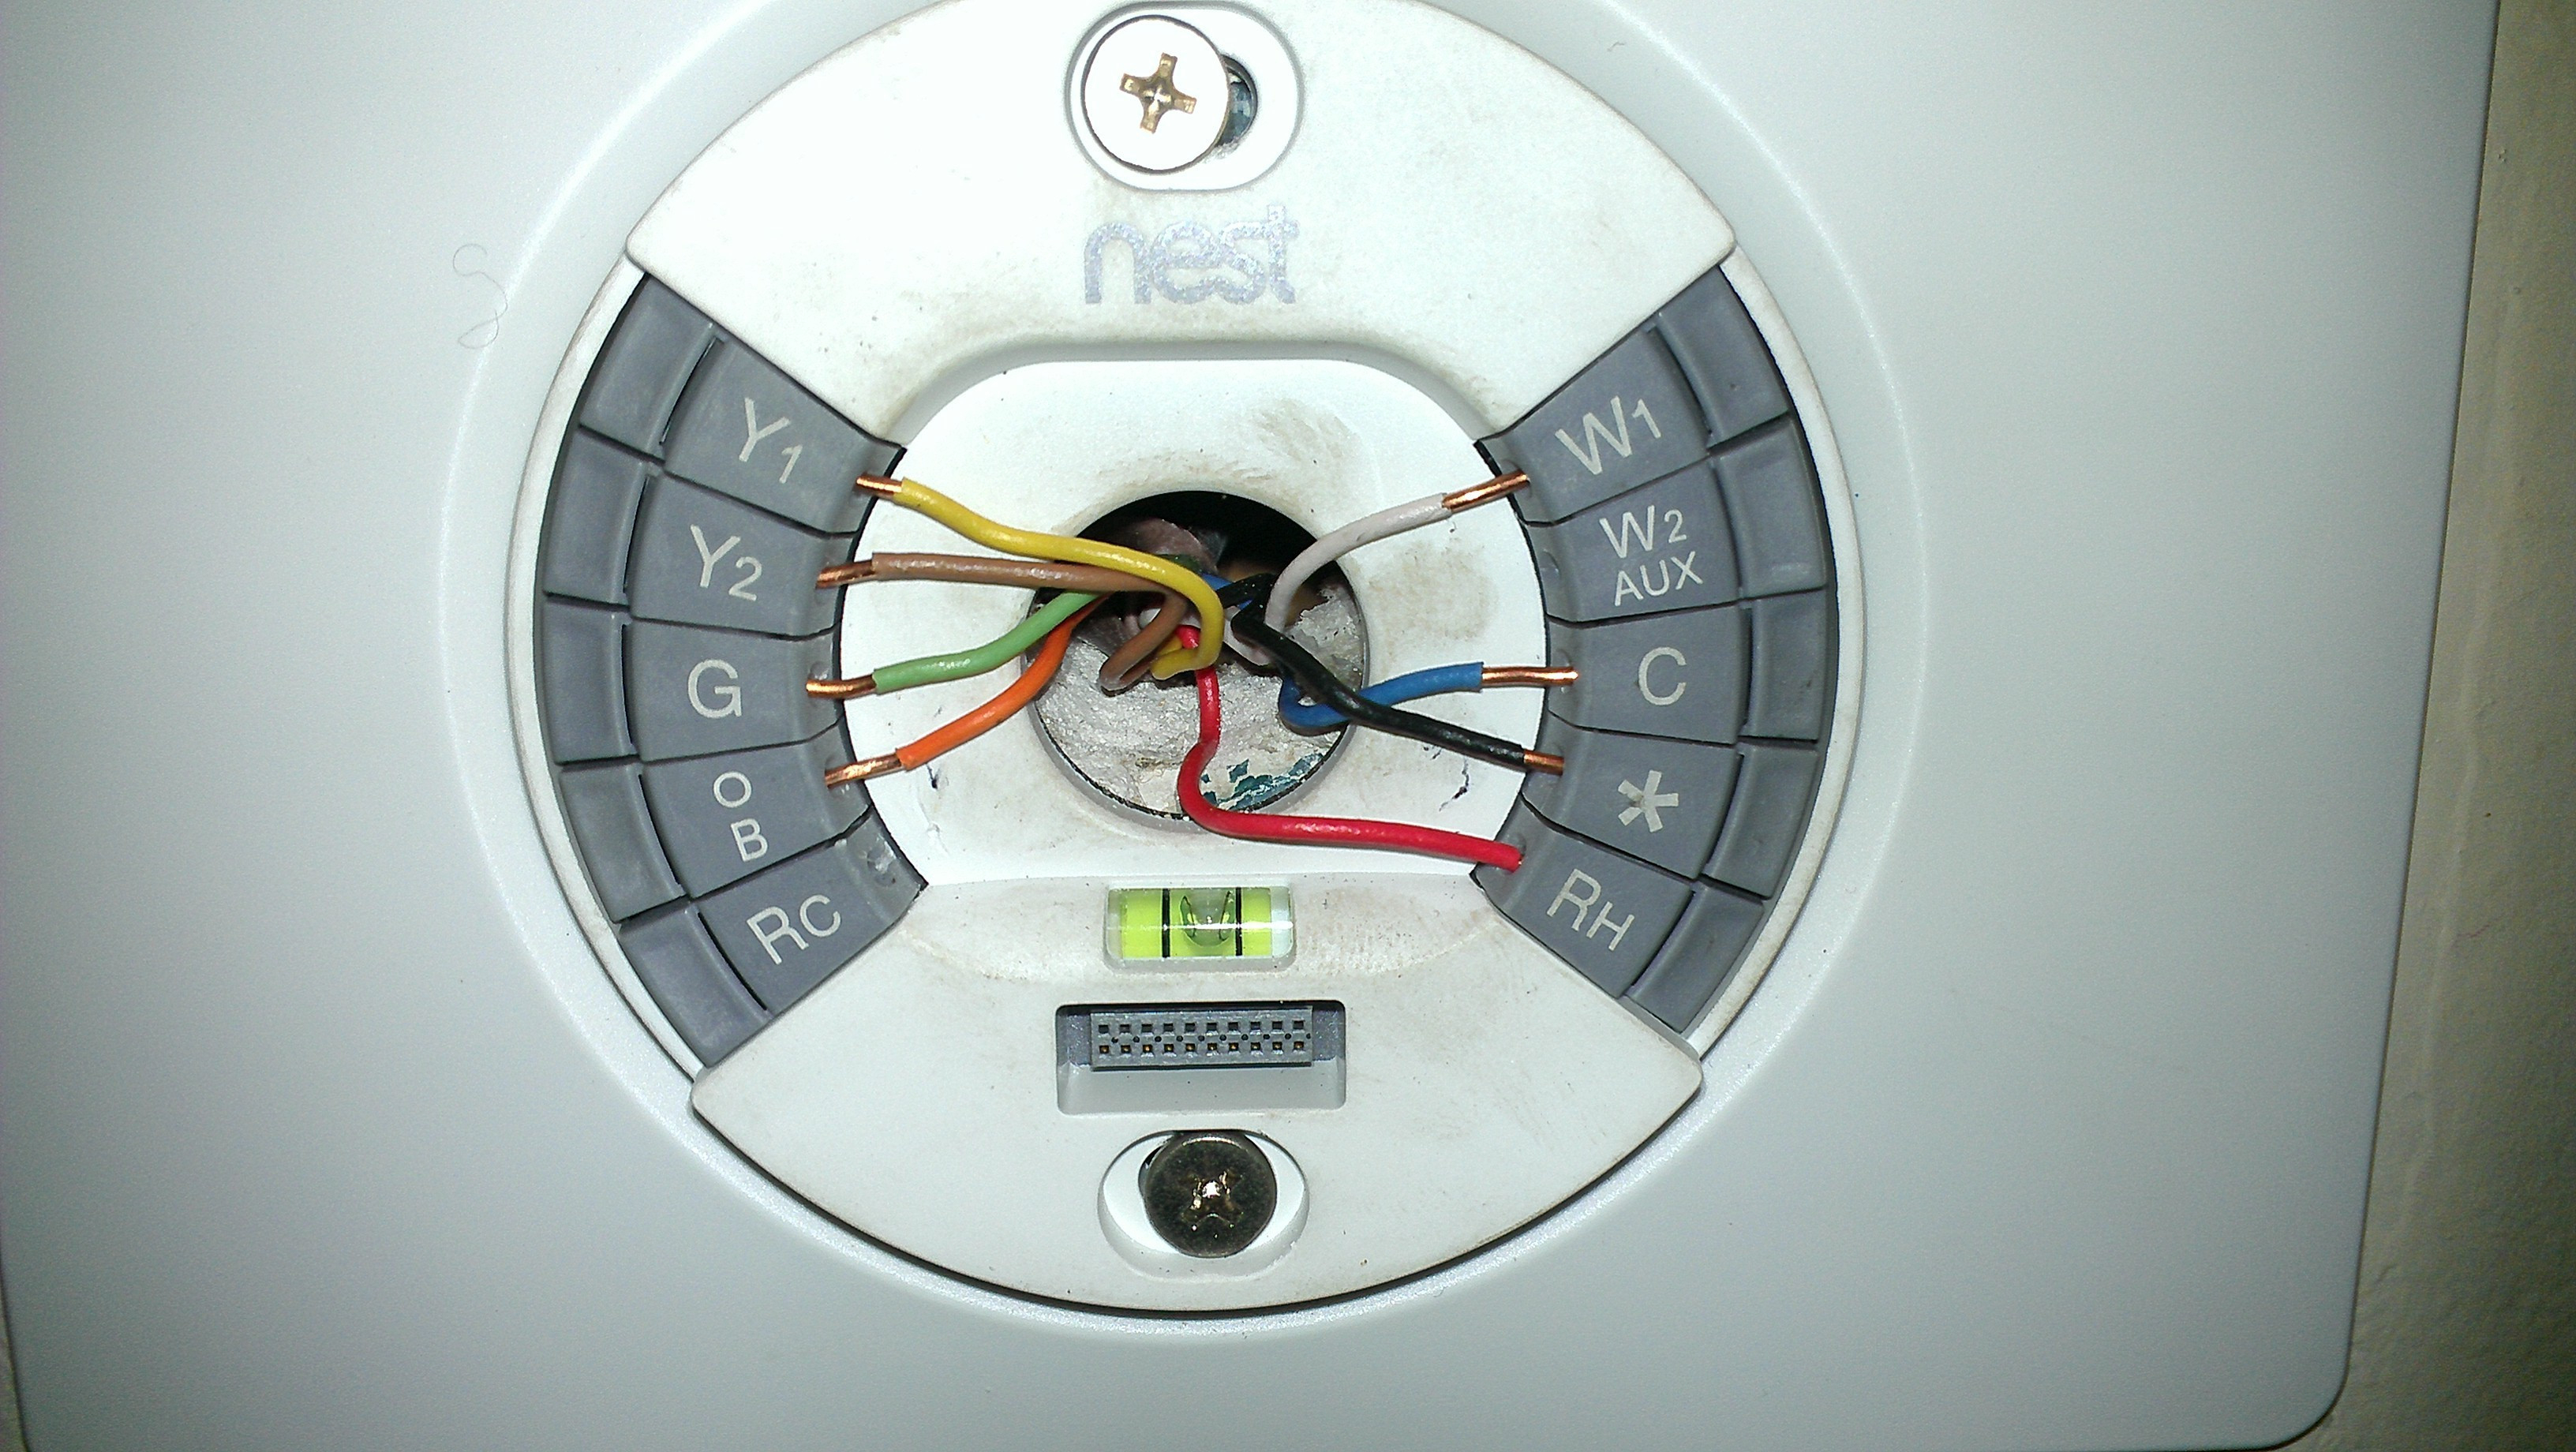 Nest Thermostat Wiring Diagram Heat Pump Fresh Fuel Tank Trane - Wiring Diagram For Heat Pumps For Nest